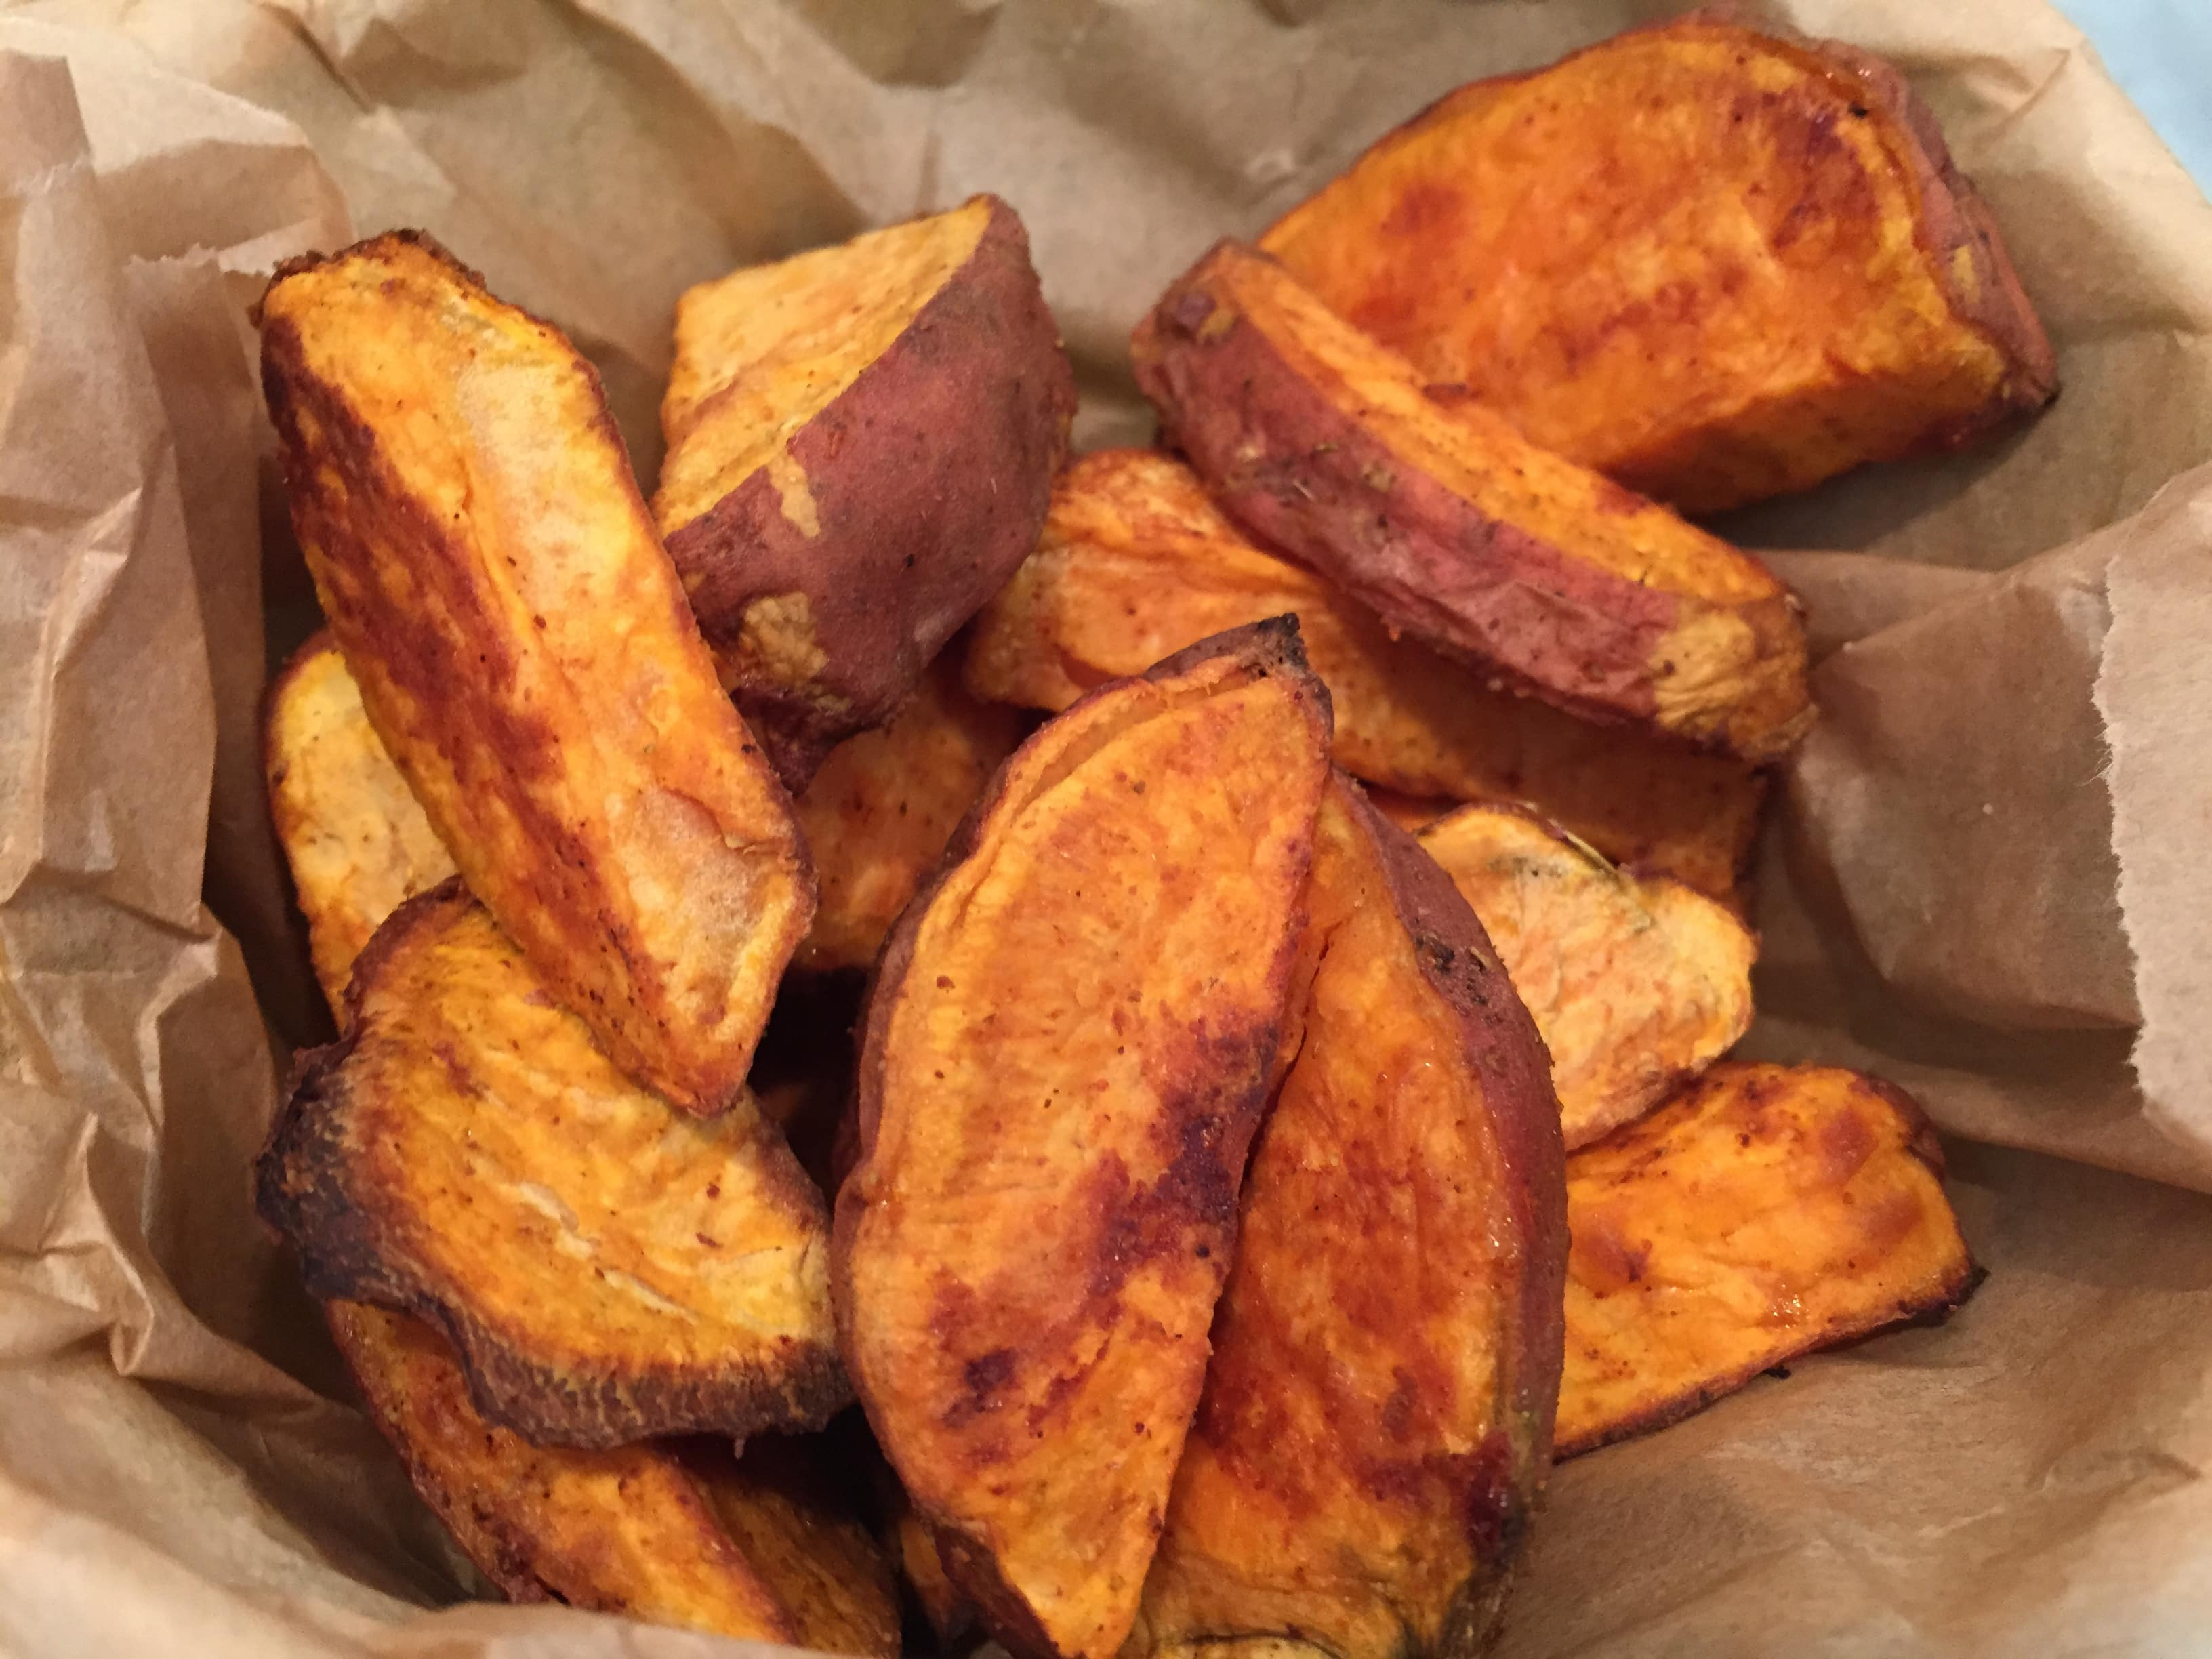 Spicy sweet potato wedges recipe student recipes student eats - Potatoes choose depending food want prepare ...